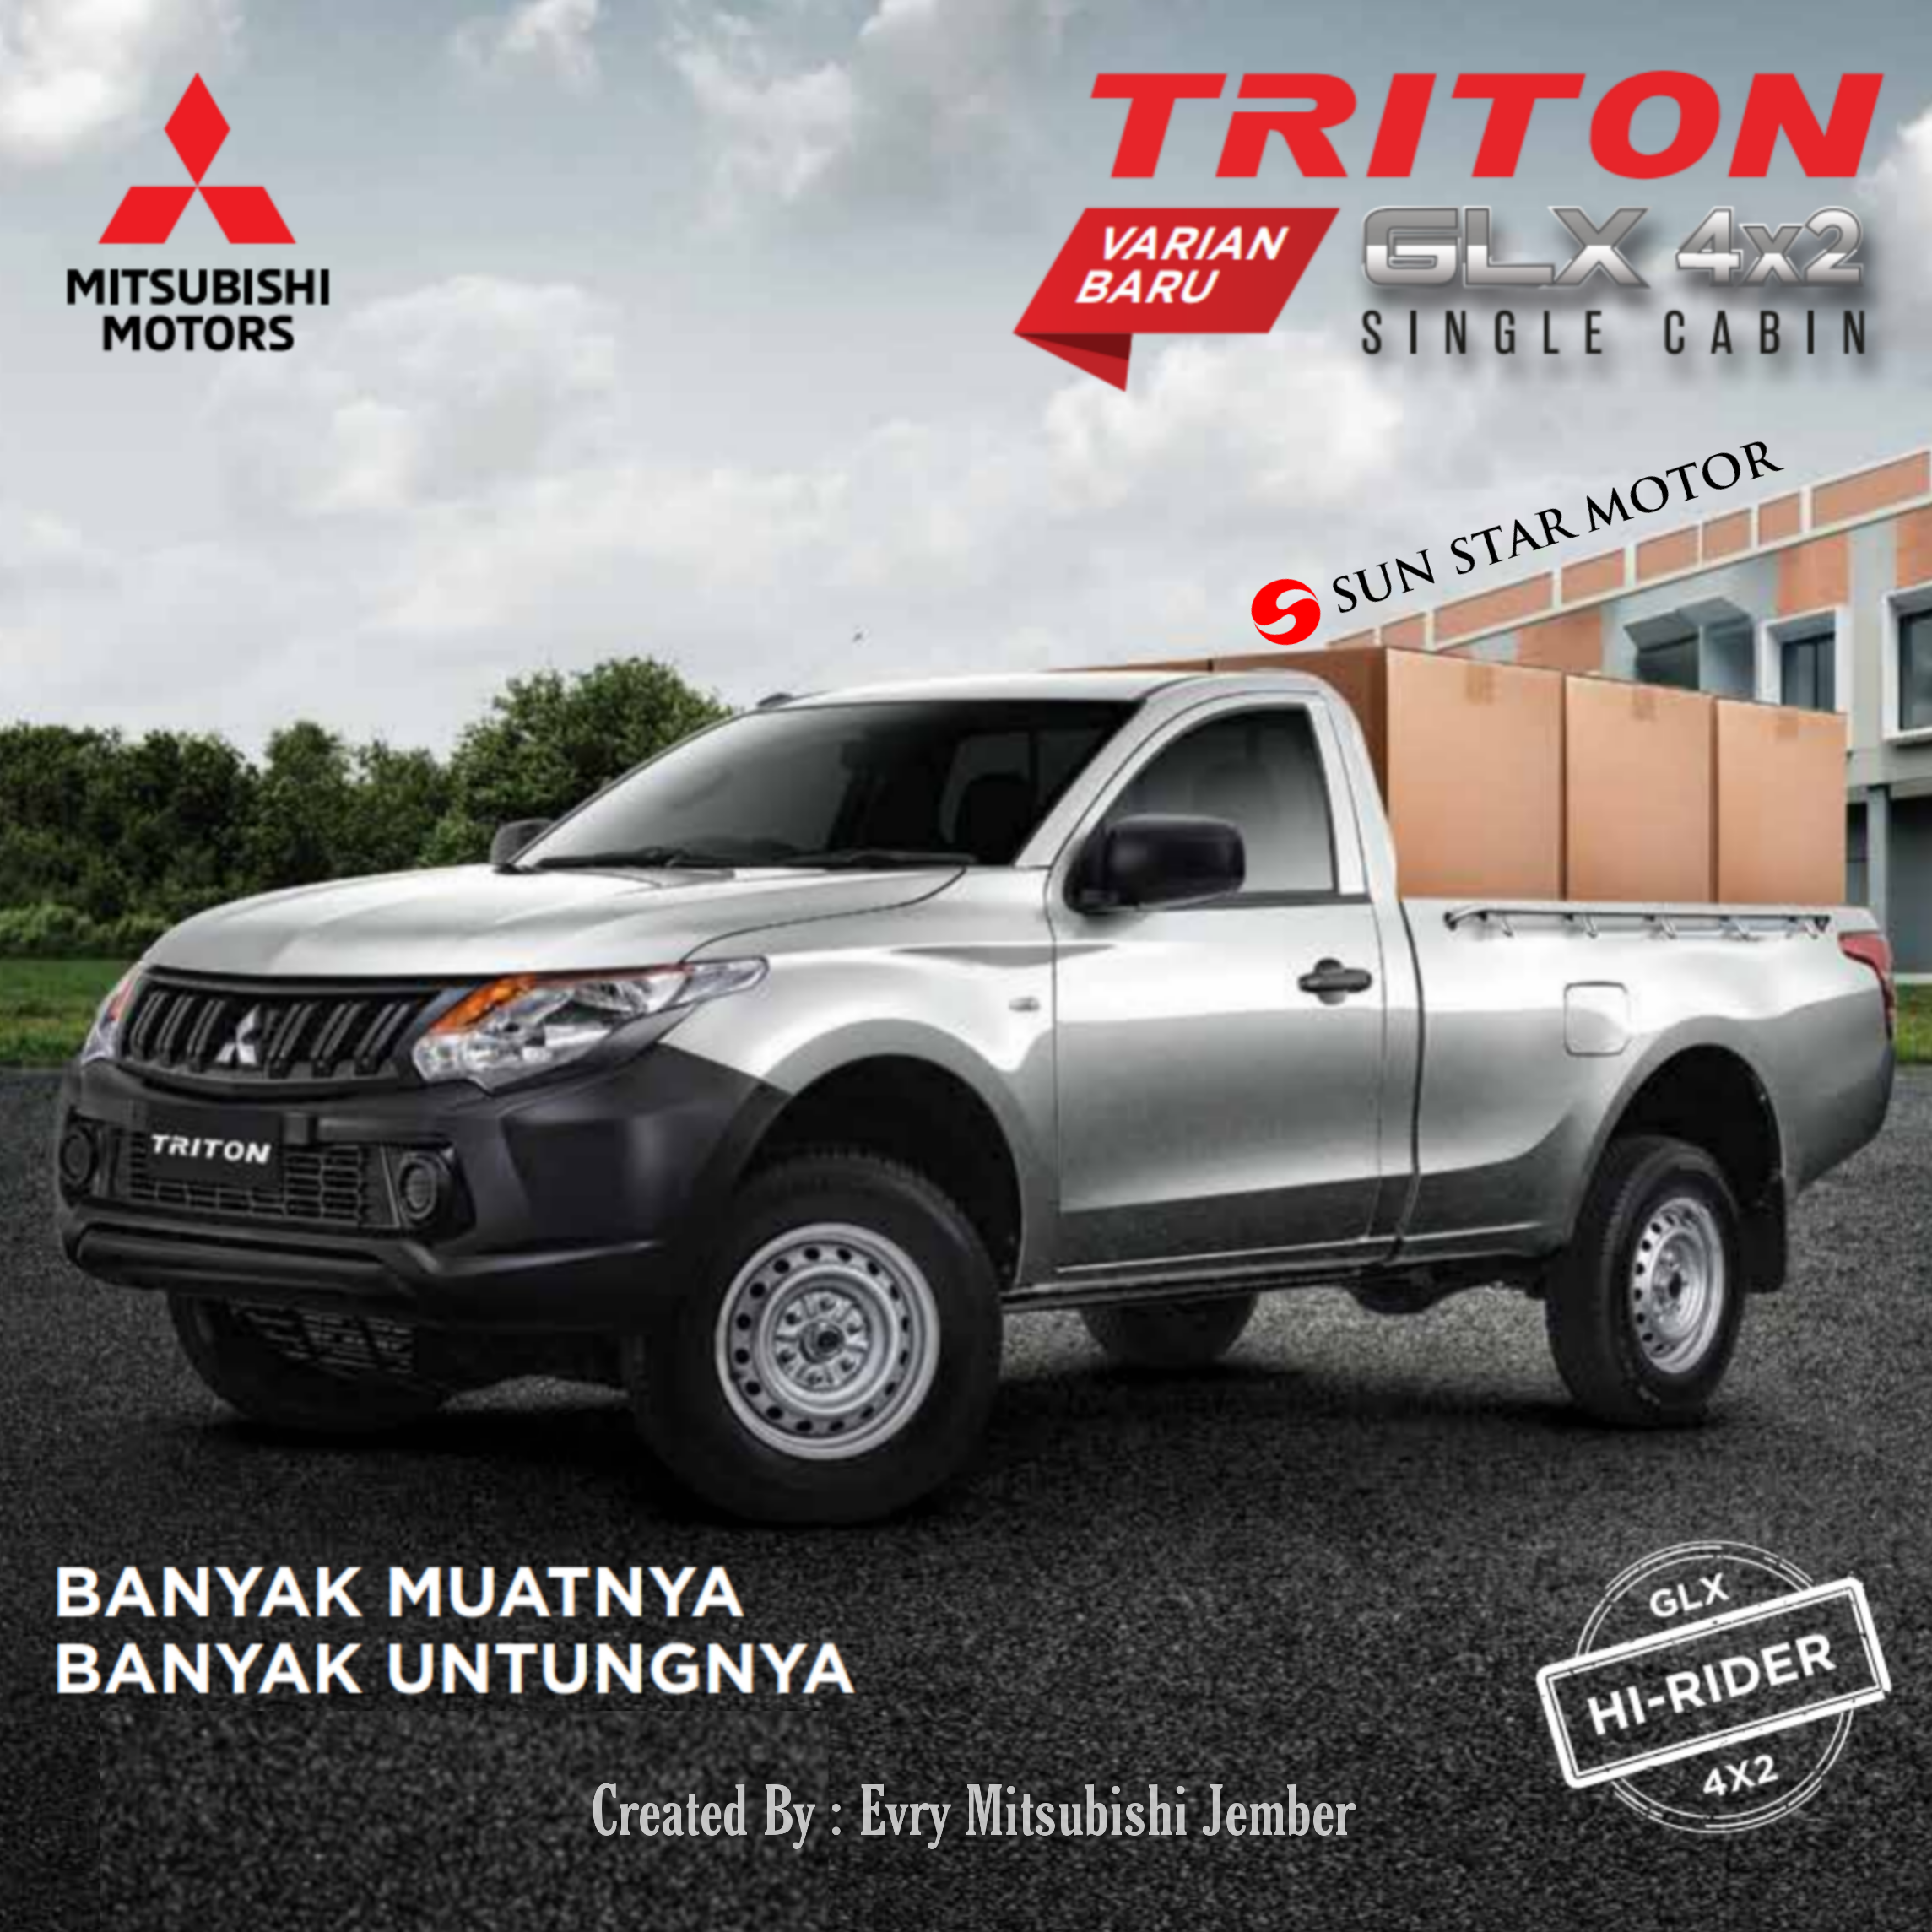 Mitsubishi Dealer Link >> Mitsubishi Dealer Link Best Upcoming Car Release 2020